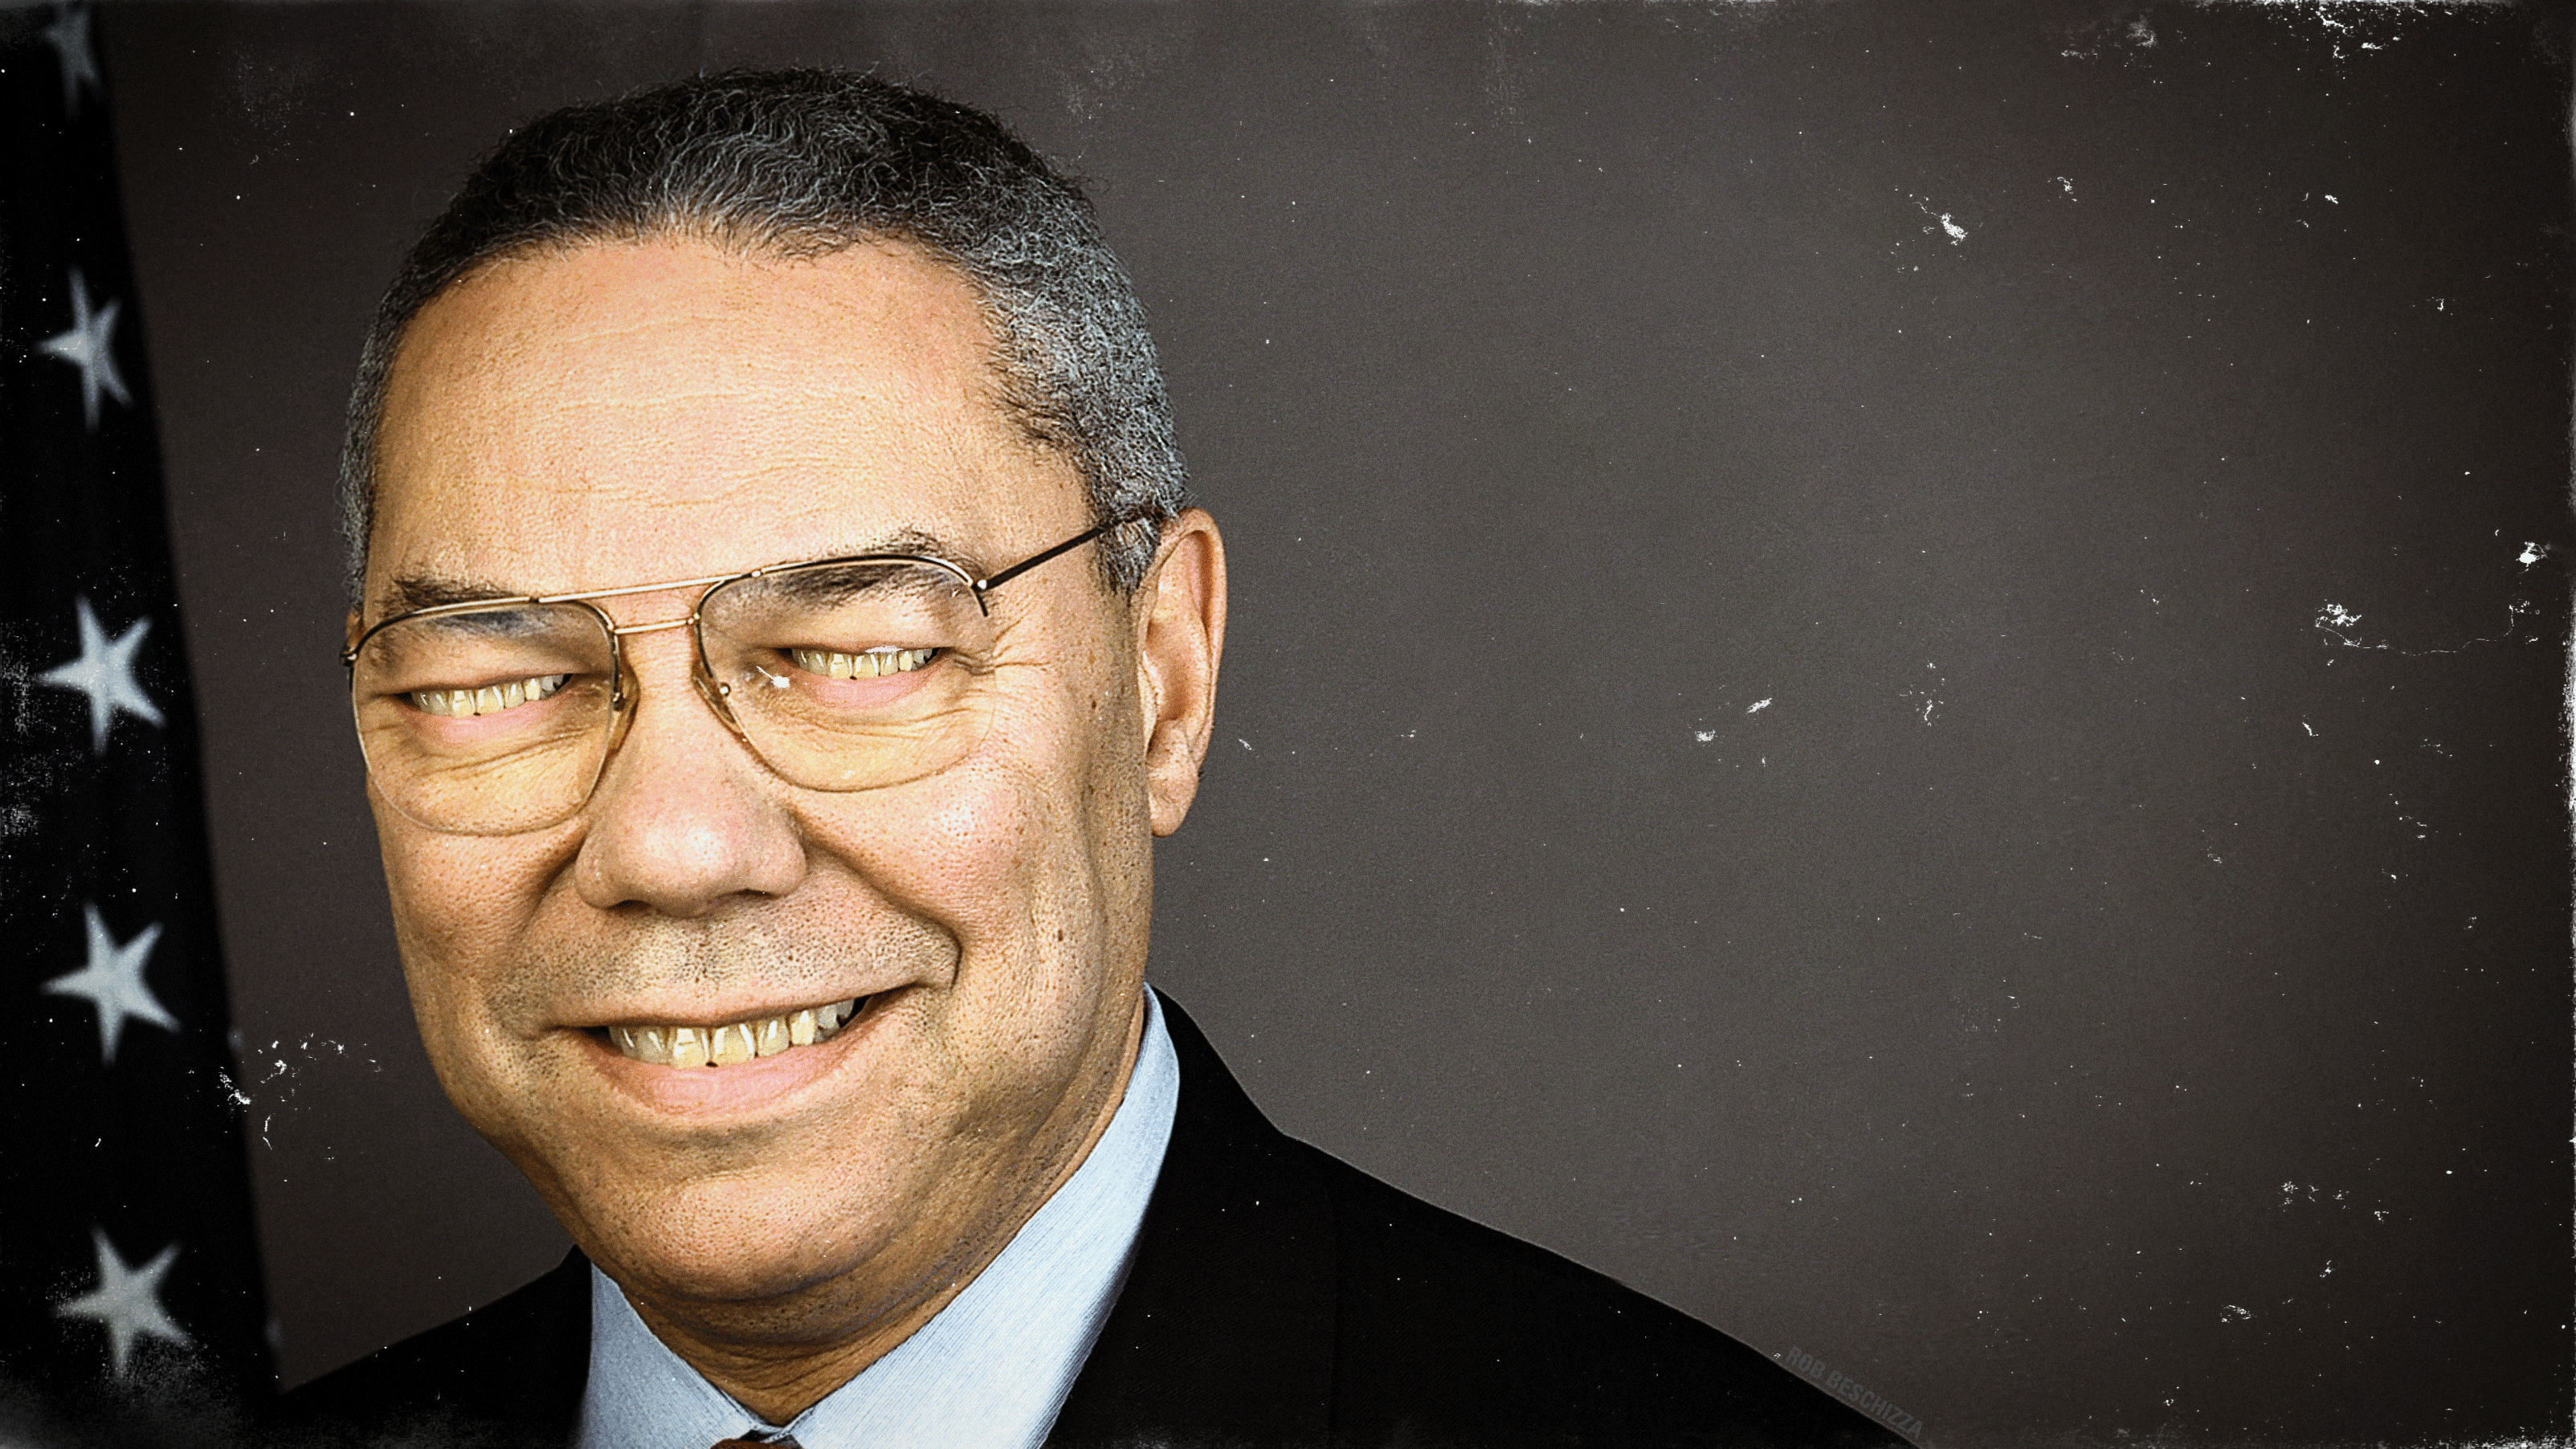 Colin Powell endorses Hillary Clinton